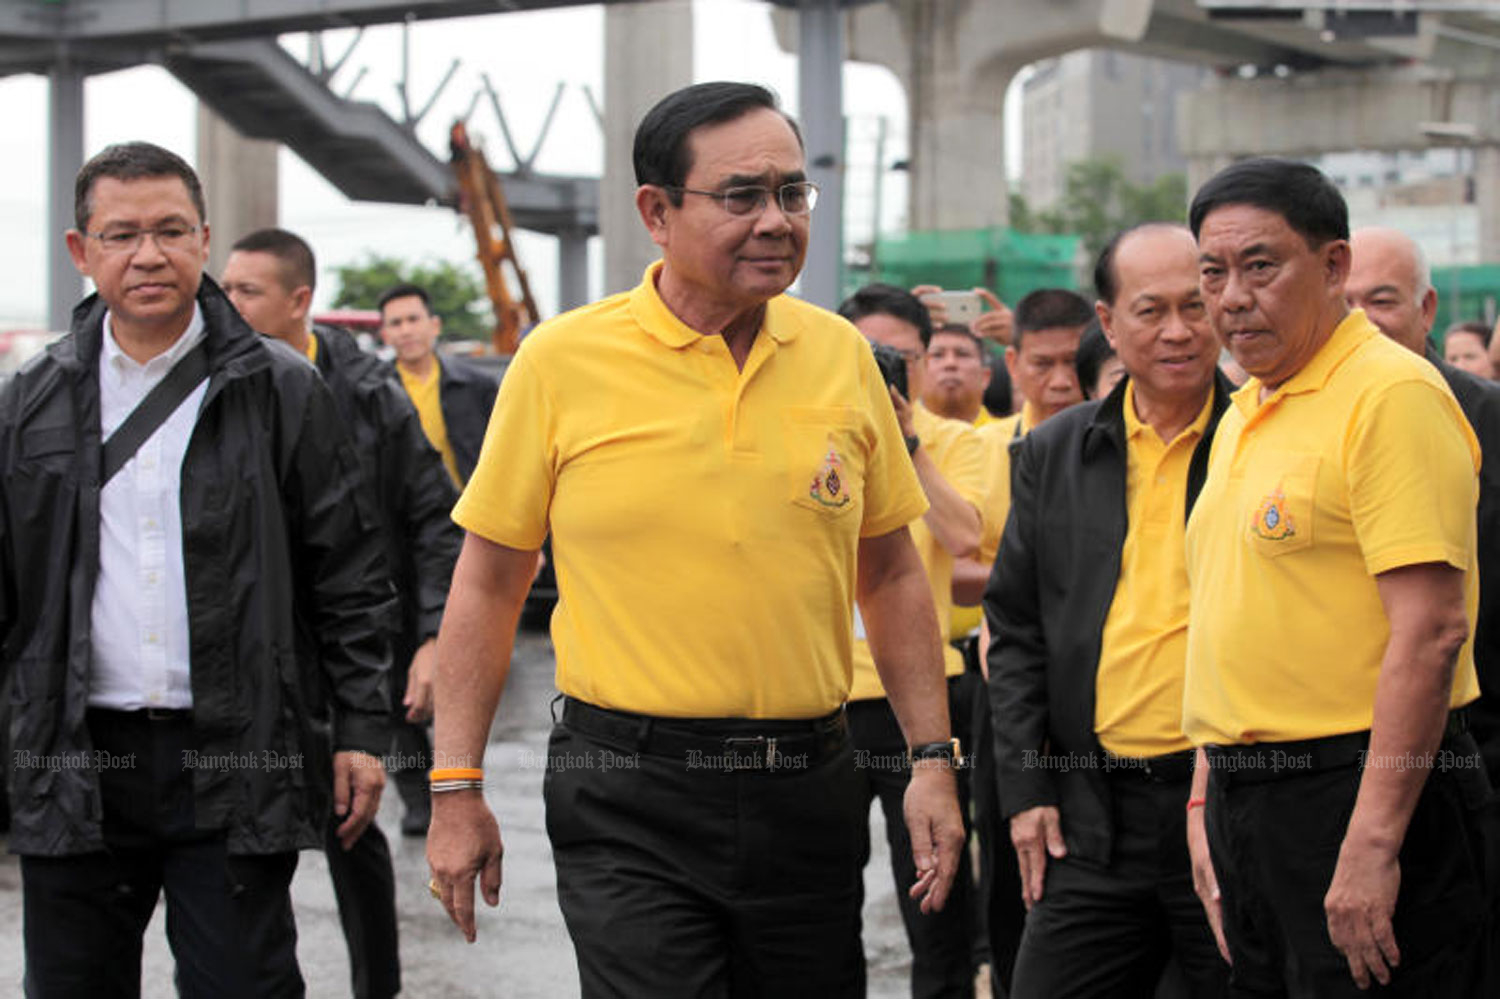 Prime Minister Prayut Chan-o-cha leads a visit on Friday to the construction sites of three flood-prevention projects in Bang Khen district of the capital. (Photo by Chanat Katanyu)